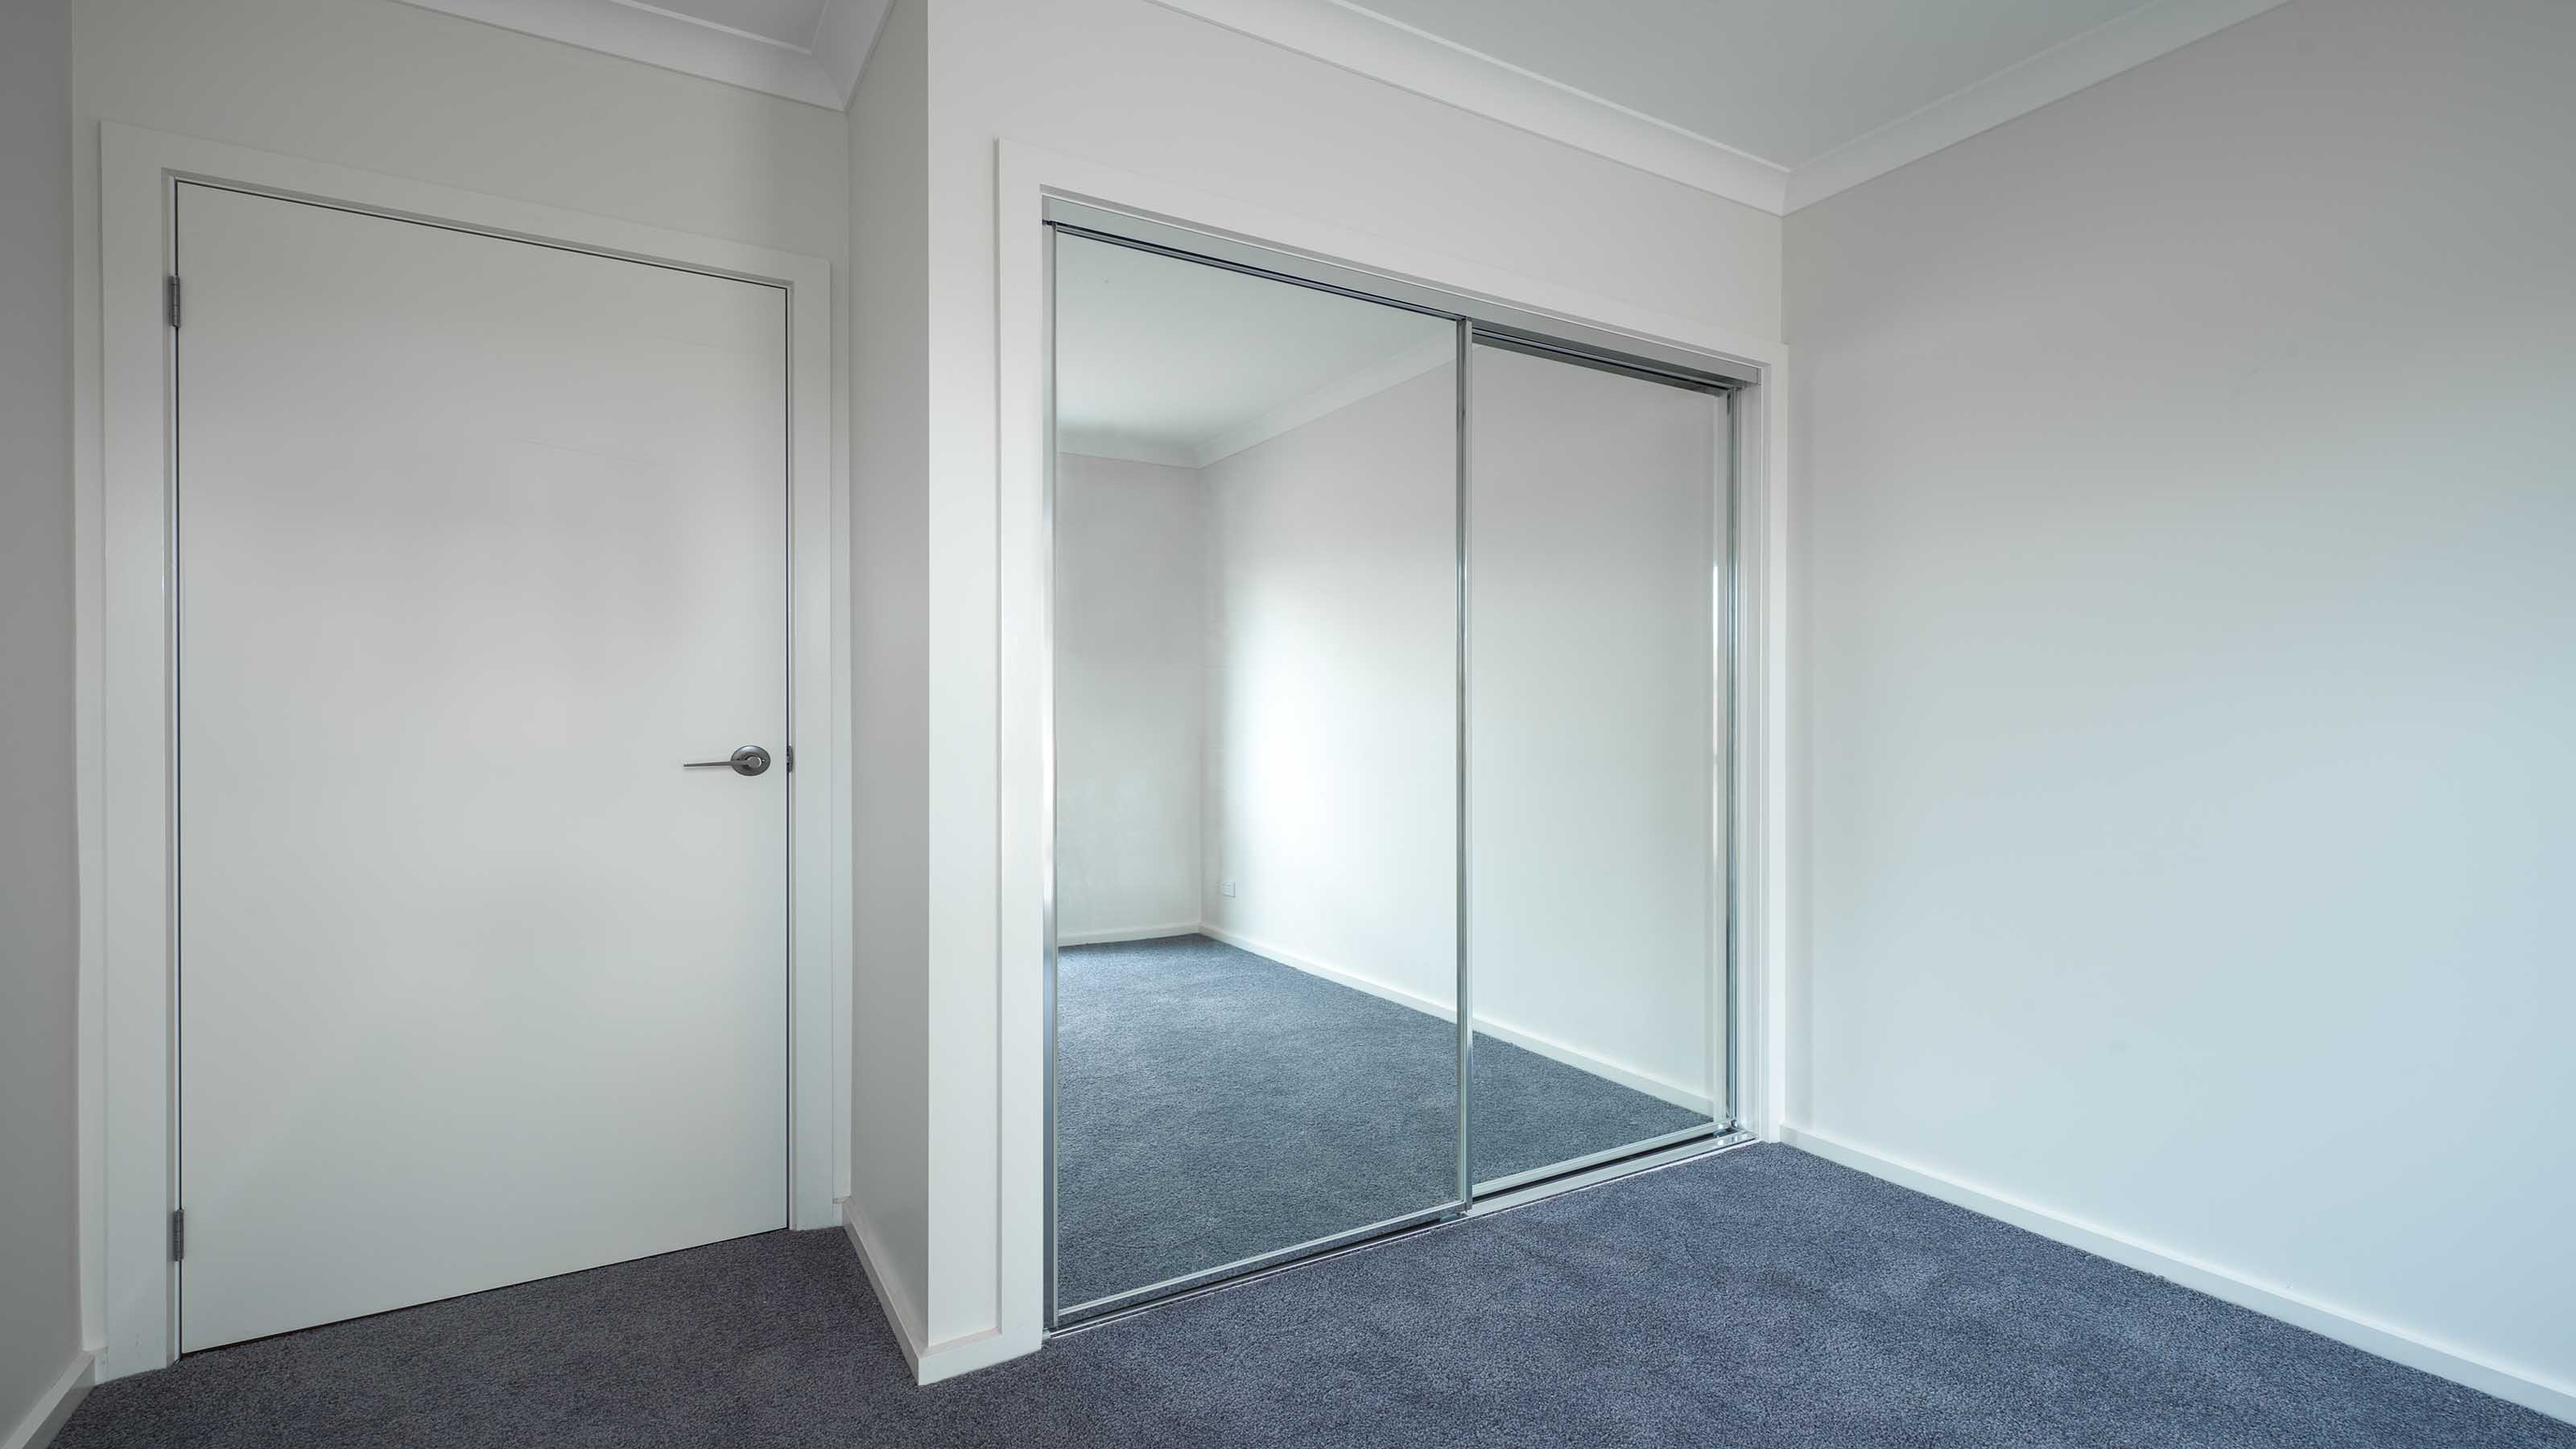 Wardrobe sliding mirror door geelong splashbacks motionglo for Sliding mirror doors